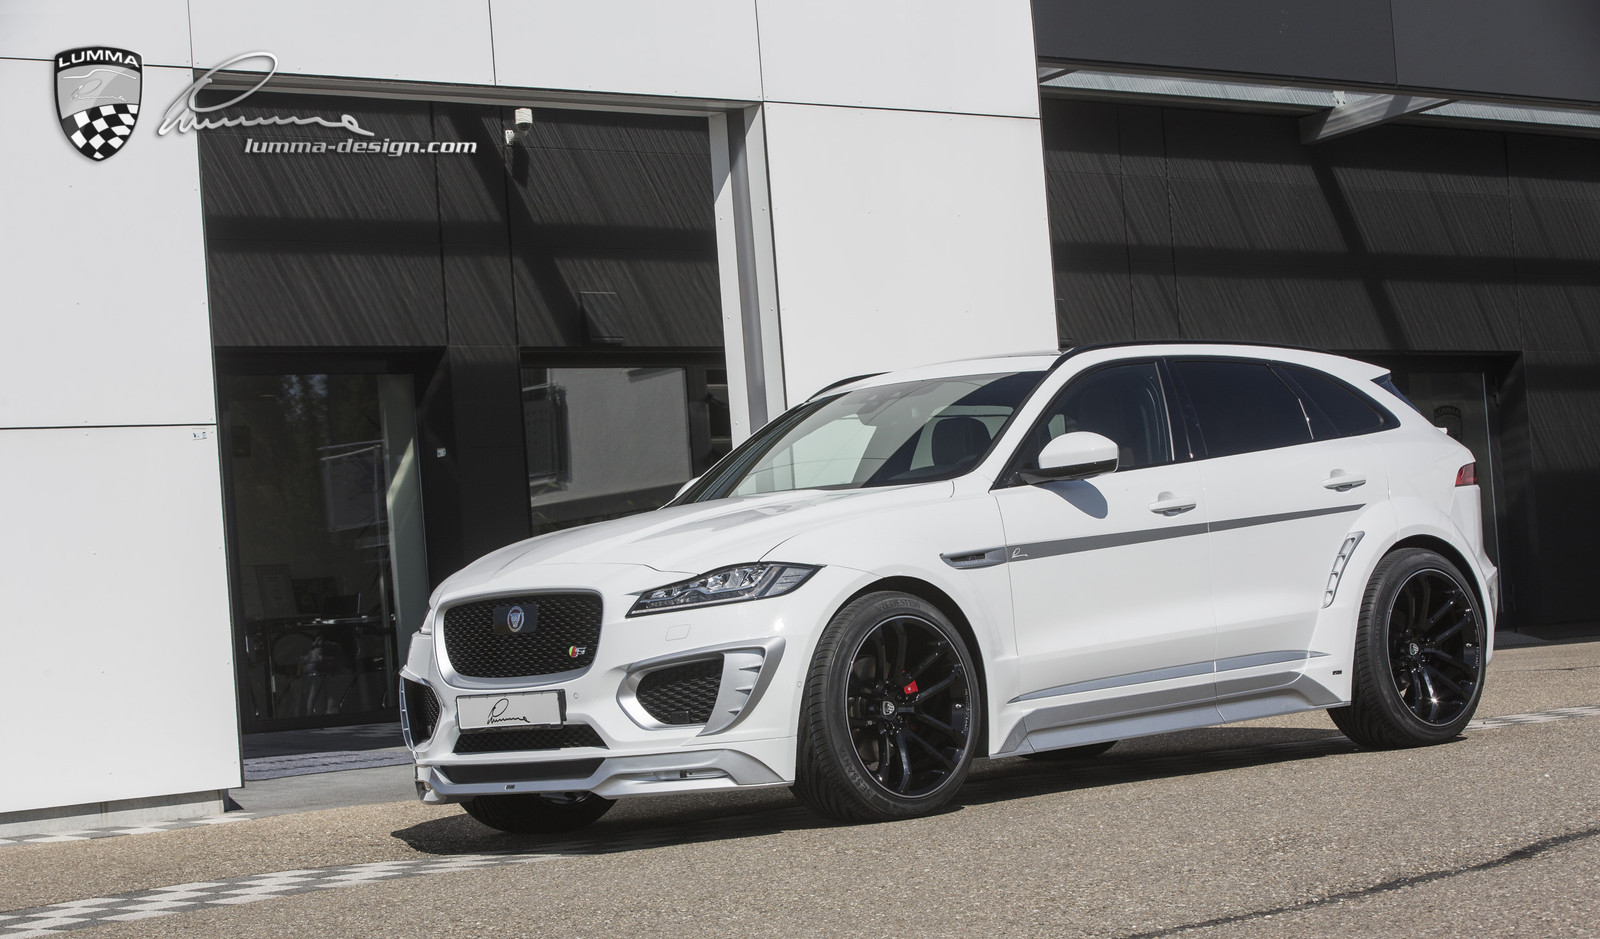 Jaguar F Type R Exhaust >> LUMMA-NEWS: New Jaguar F-PACE CLR F